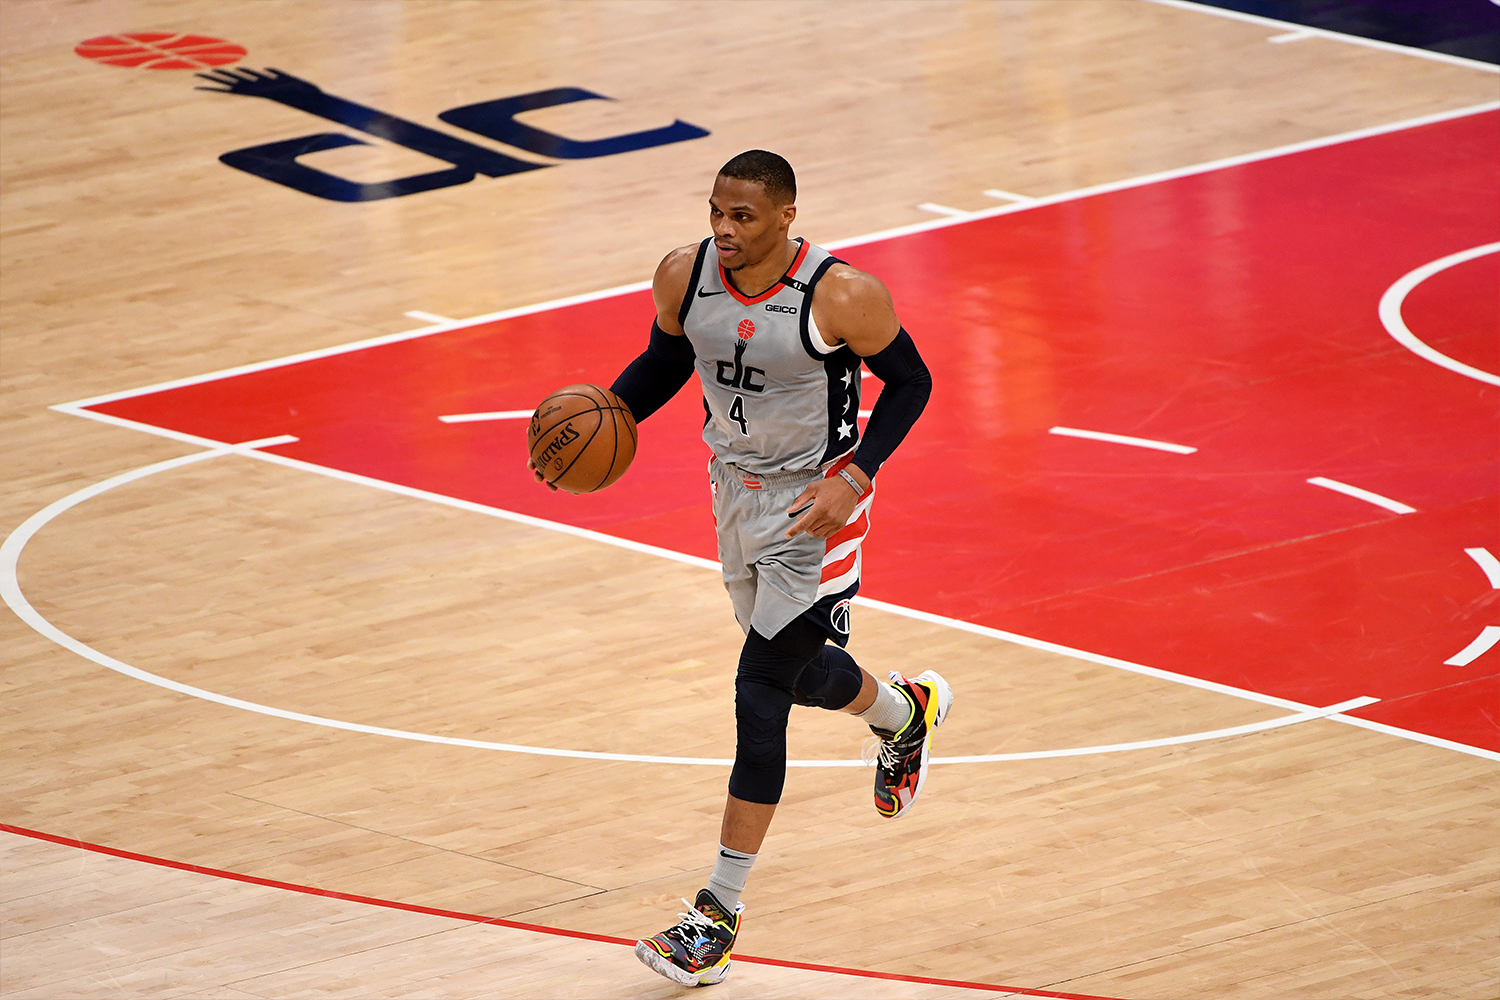 Russell Westbrook #4 of the Washington Wizards dribbles against the Golden State Warriors